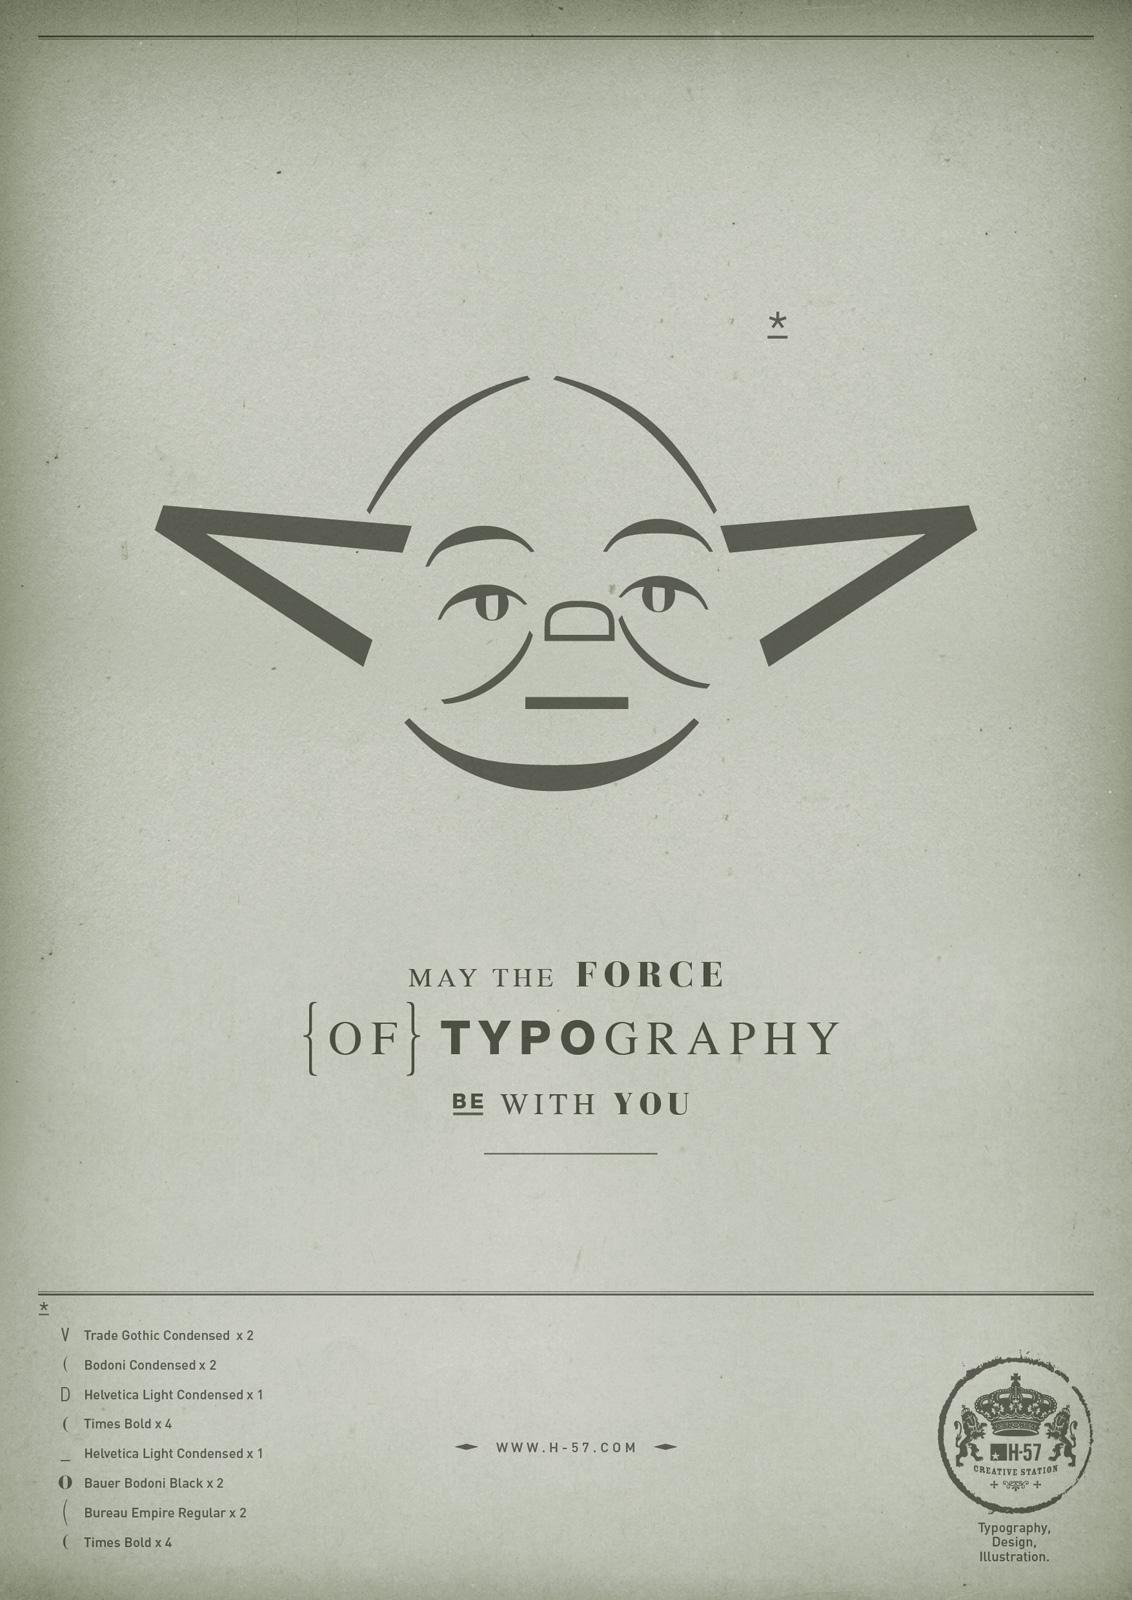 H-57 Print Ad -  The Force of Typography, Yoda